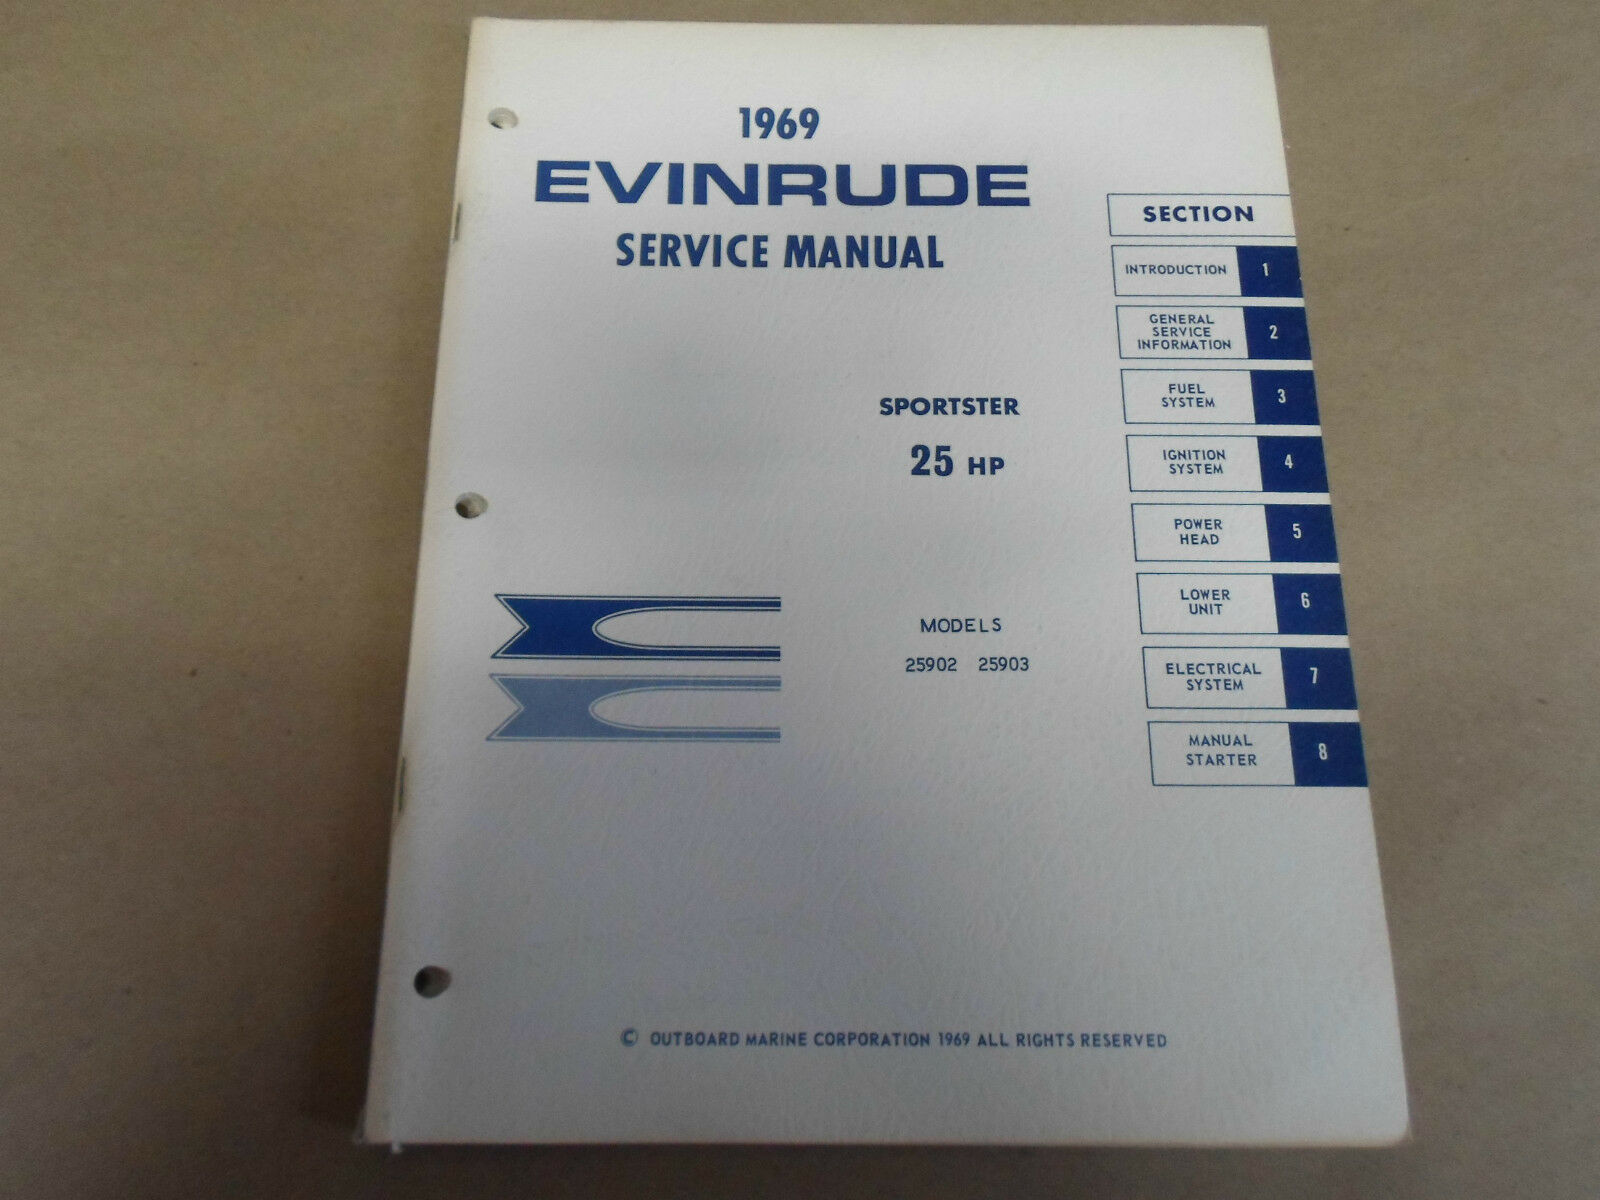 1969 Evinrude Sportster 25 HP 25HP Service Shop Repair Manual NEW 25902  25903 x 1 of 12Only 2 available ...